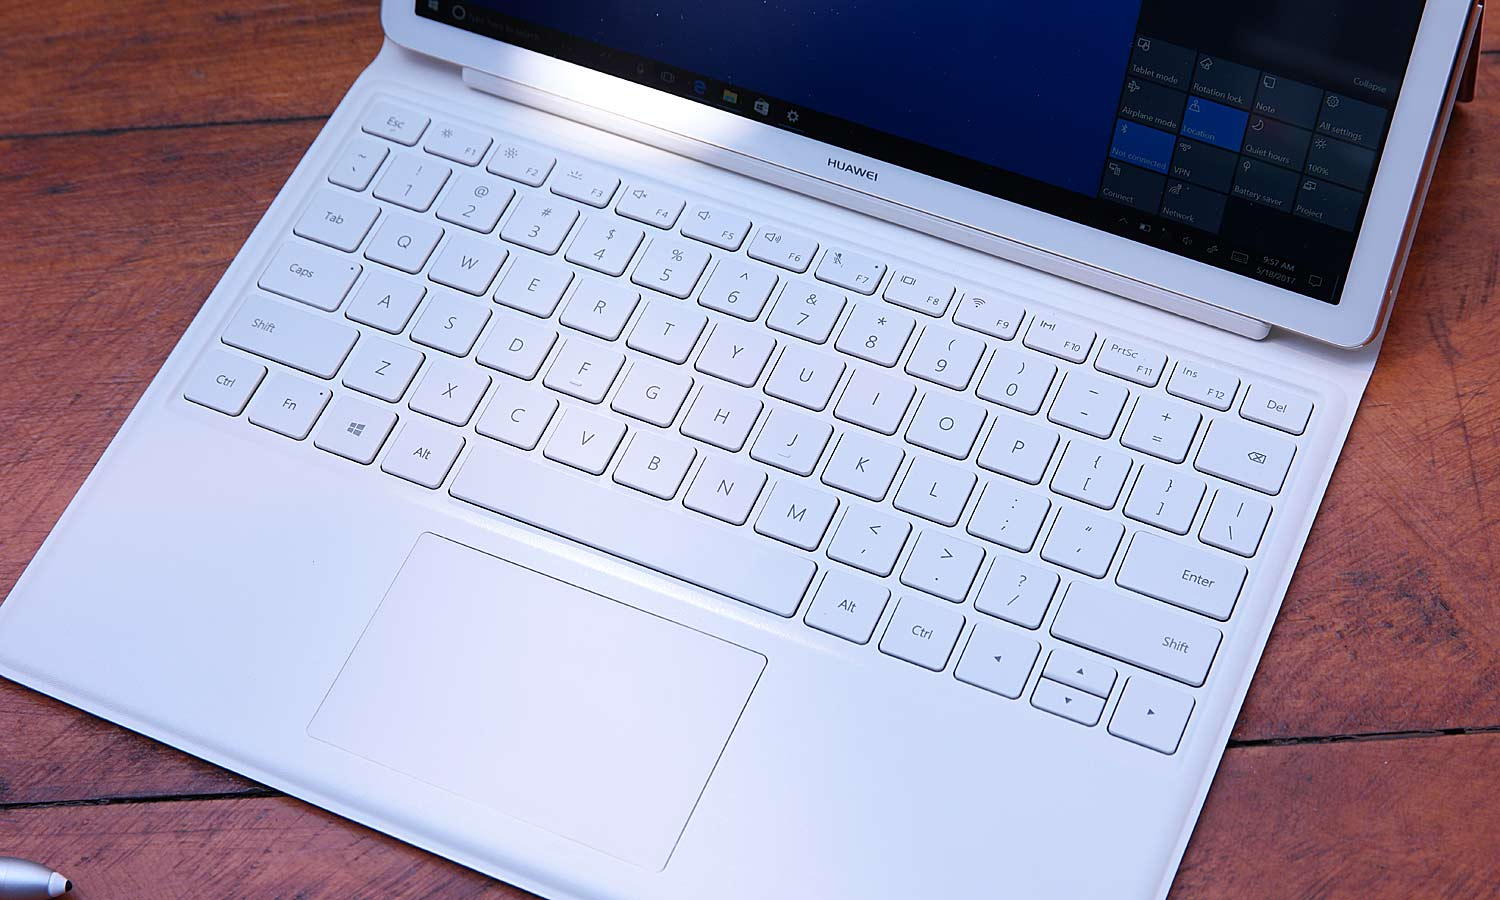 Huawei Launches the MateBook E 2-in-1: The Next Generation